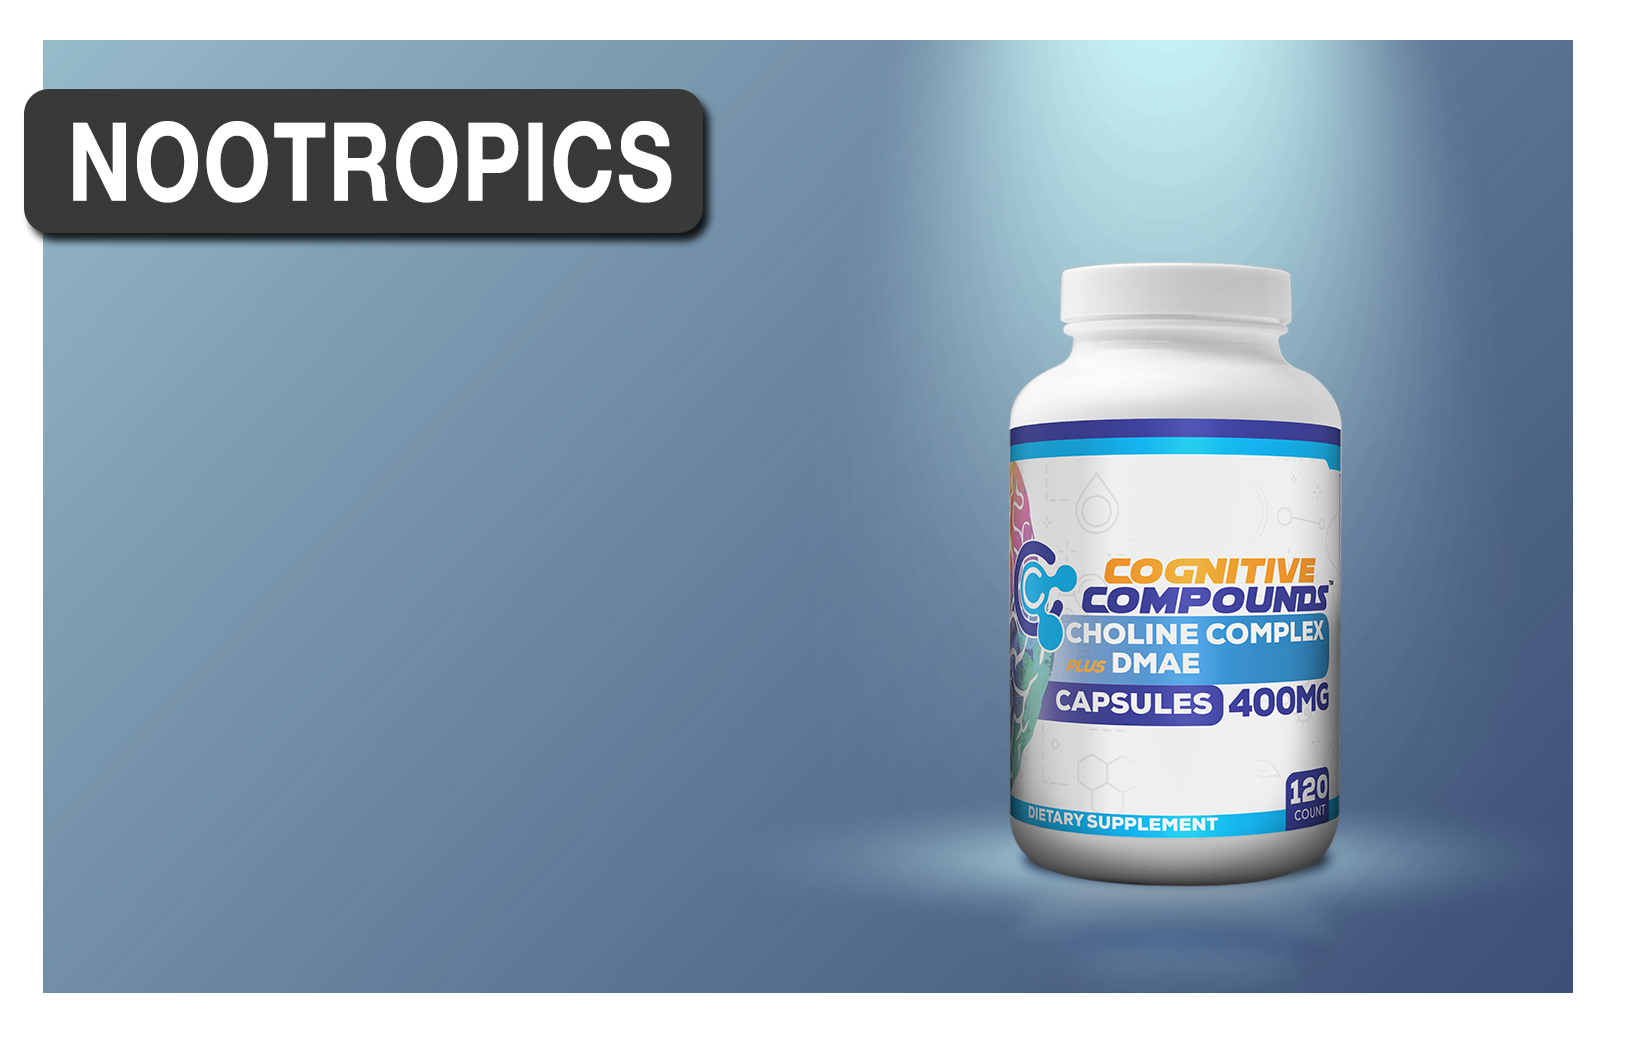 Cognitive Compounds Nootropics